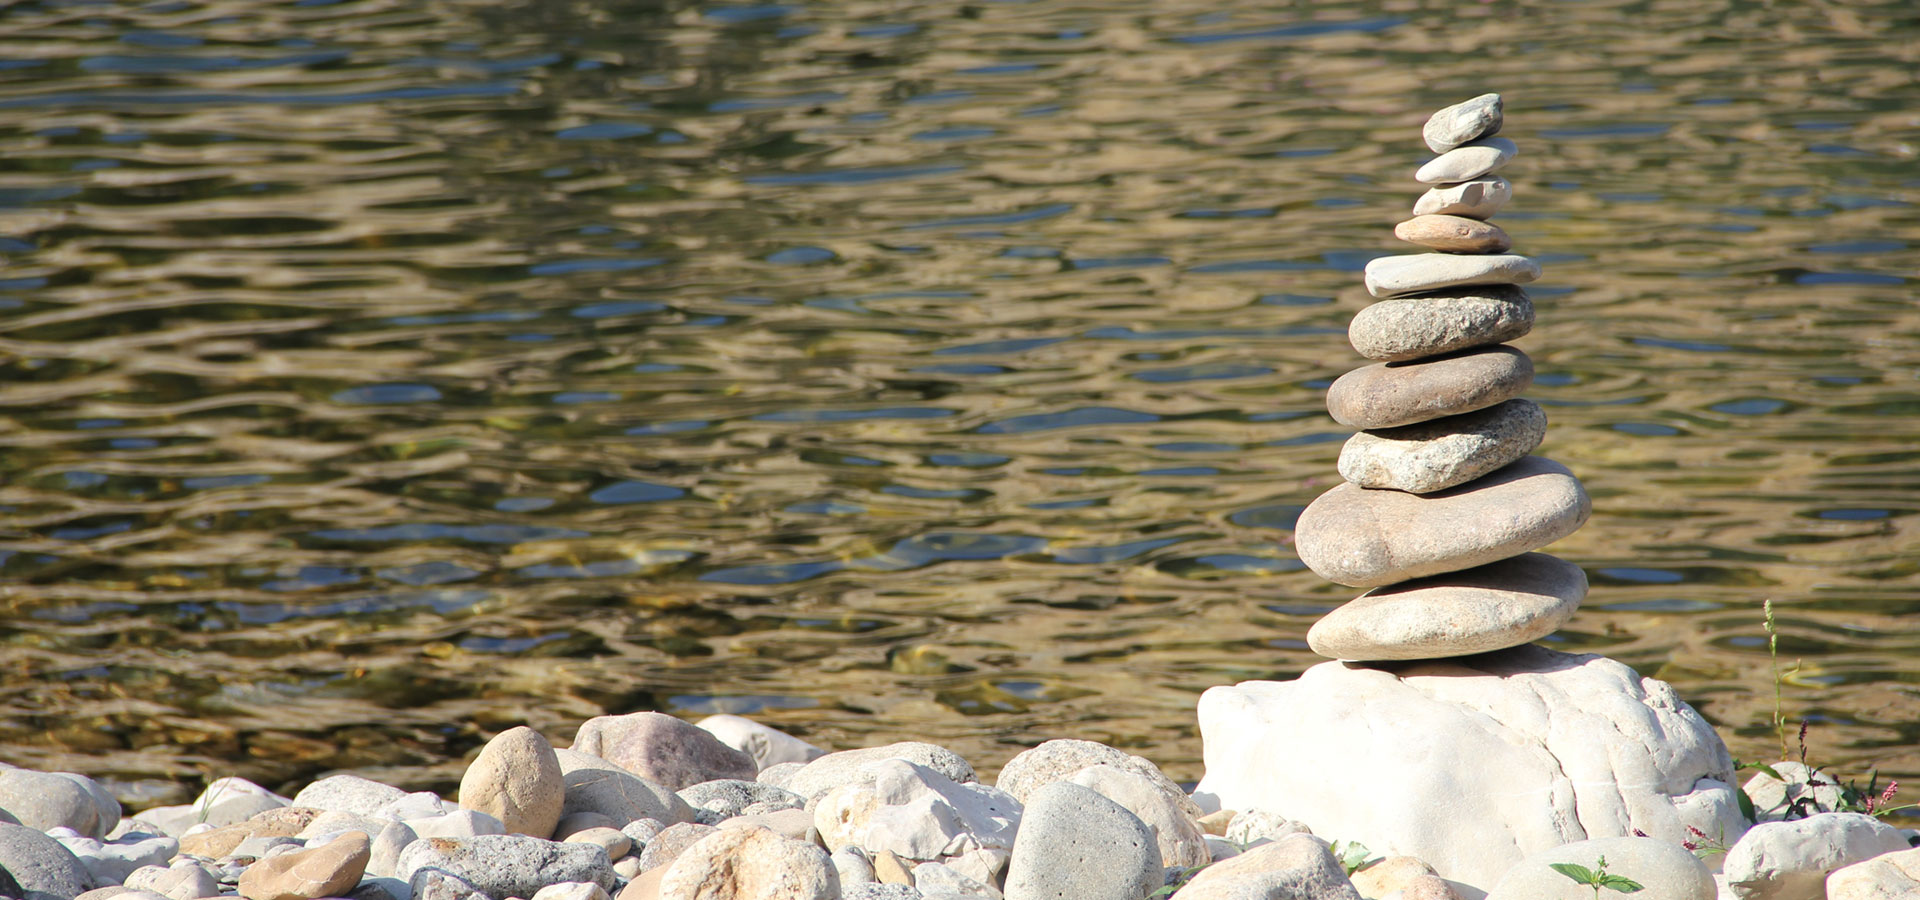 balanced rocks stacked from largest to smallest